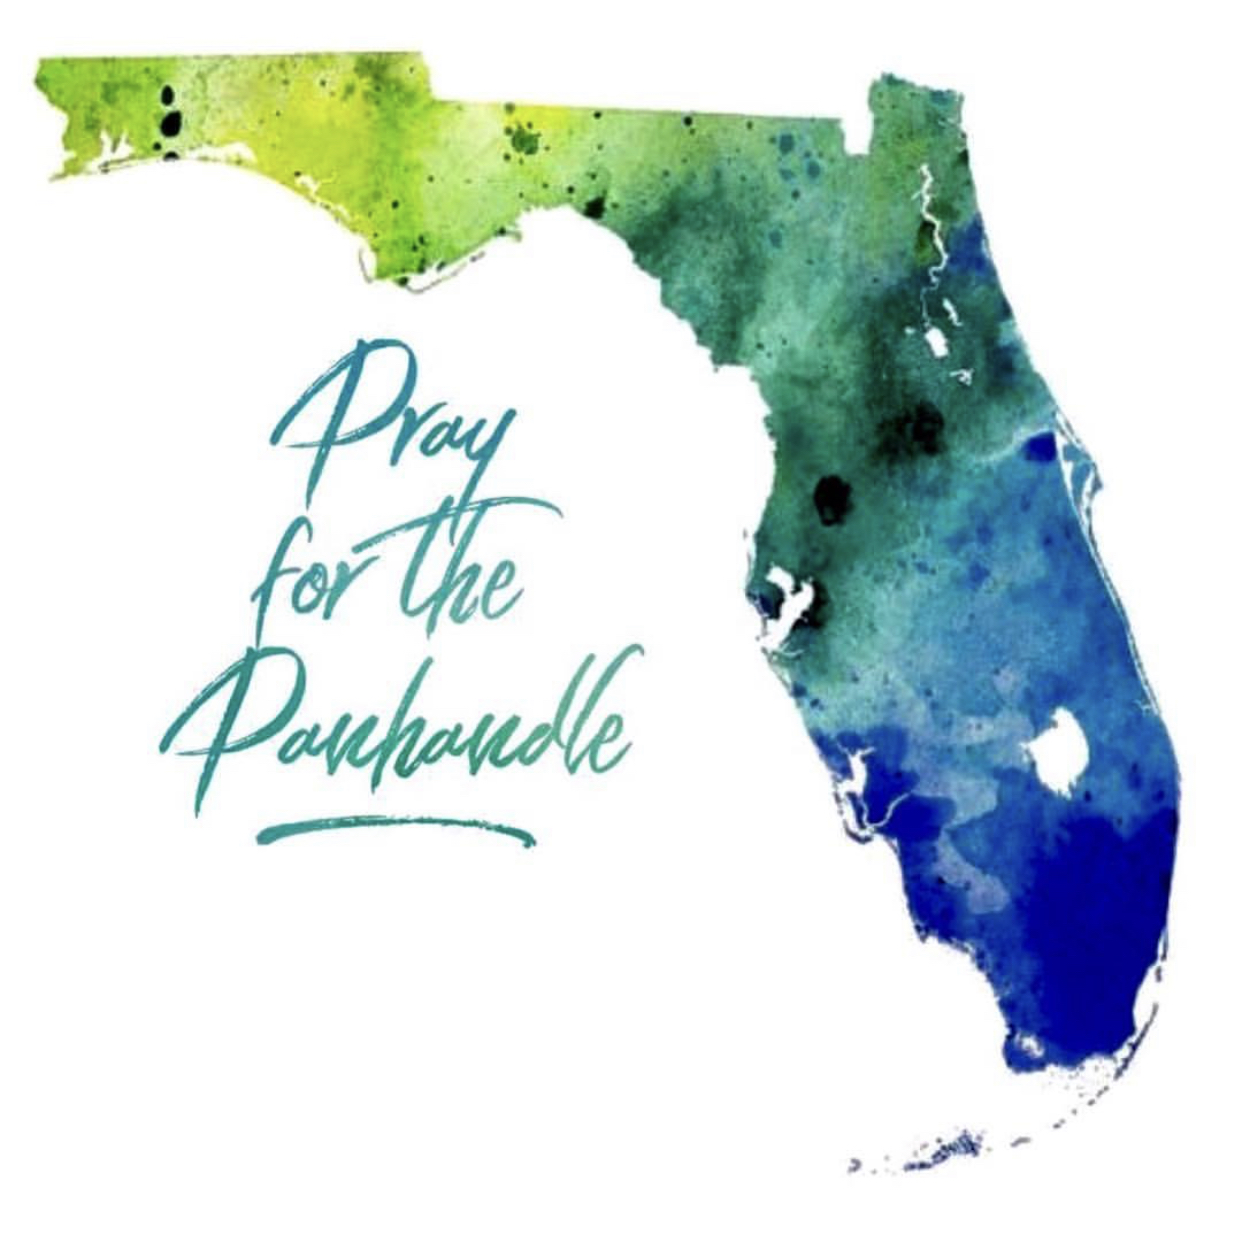 PrayForThePanhandle